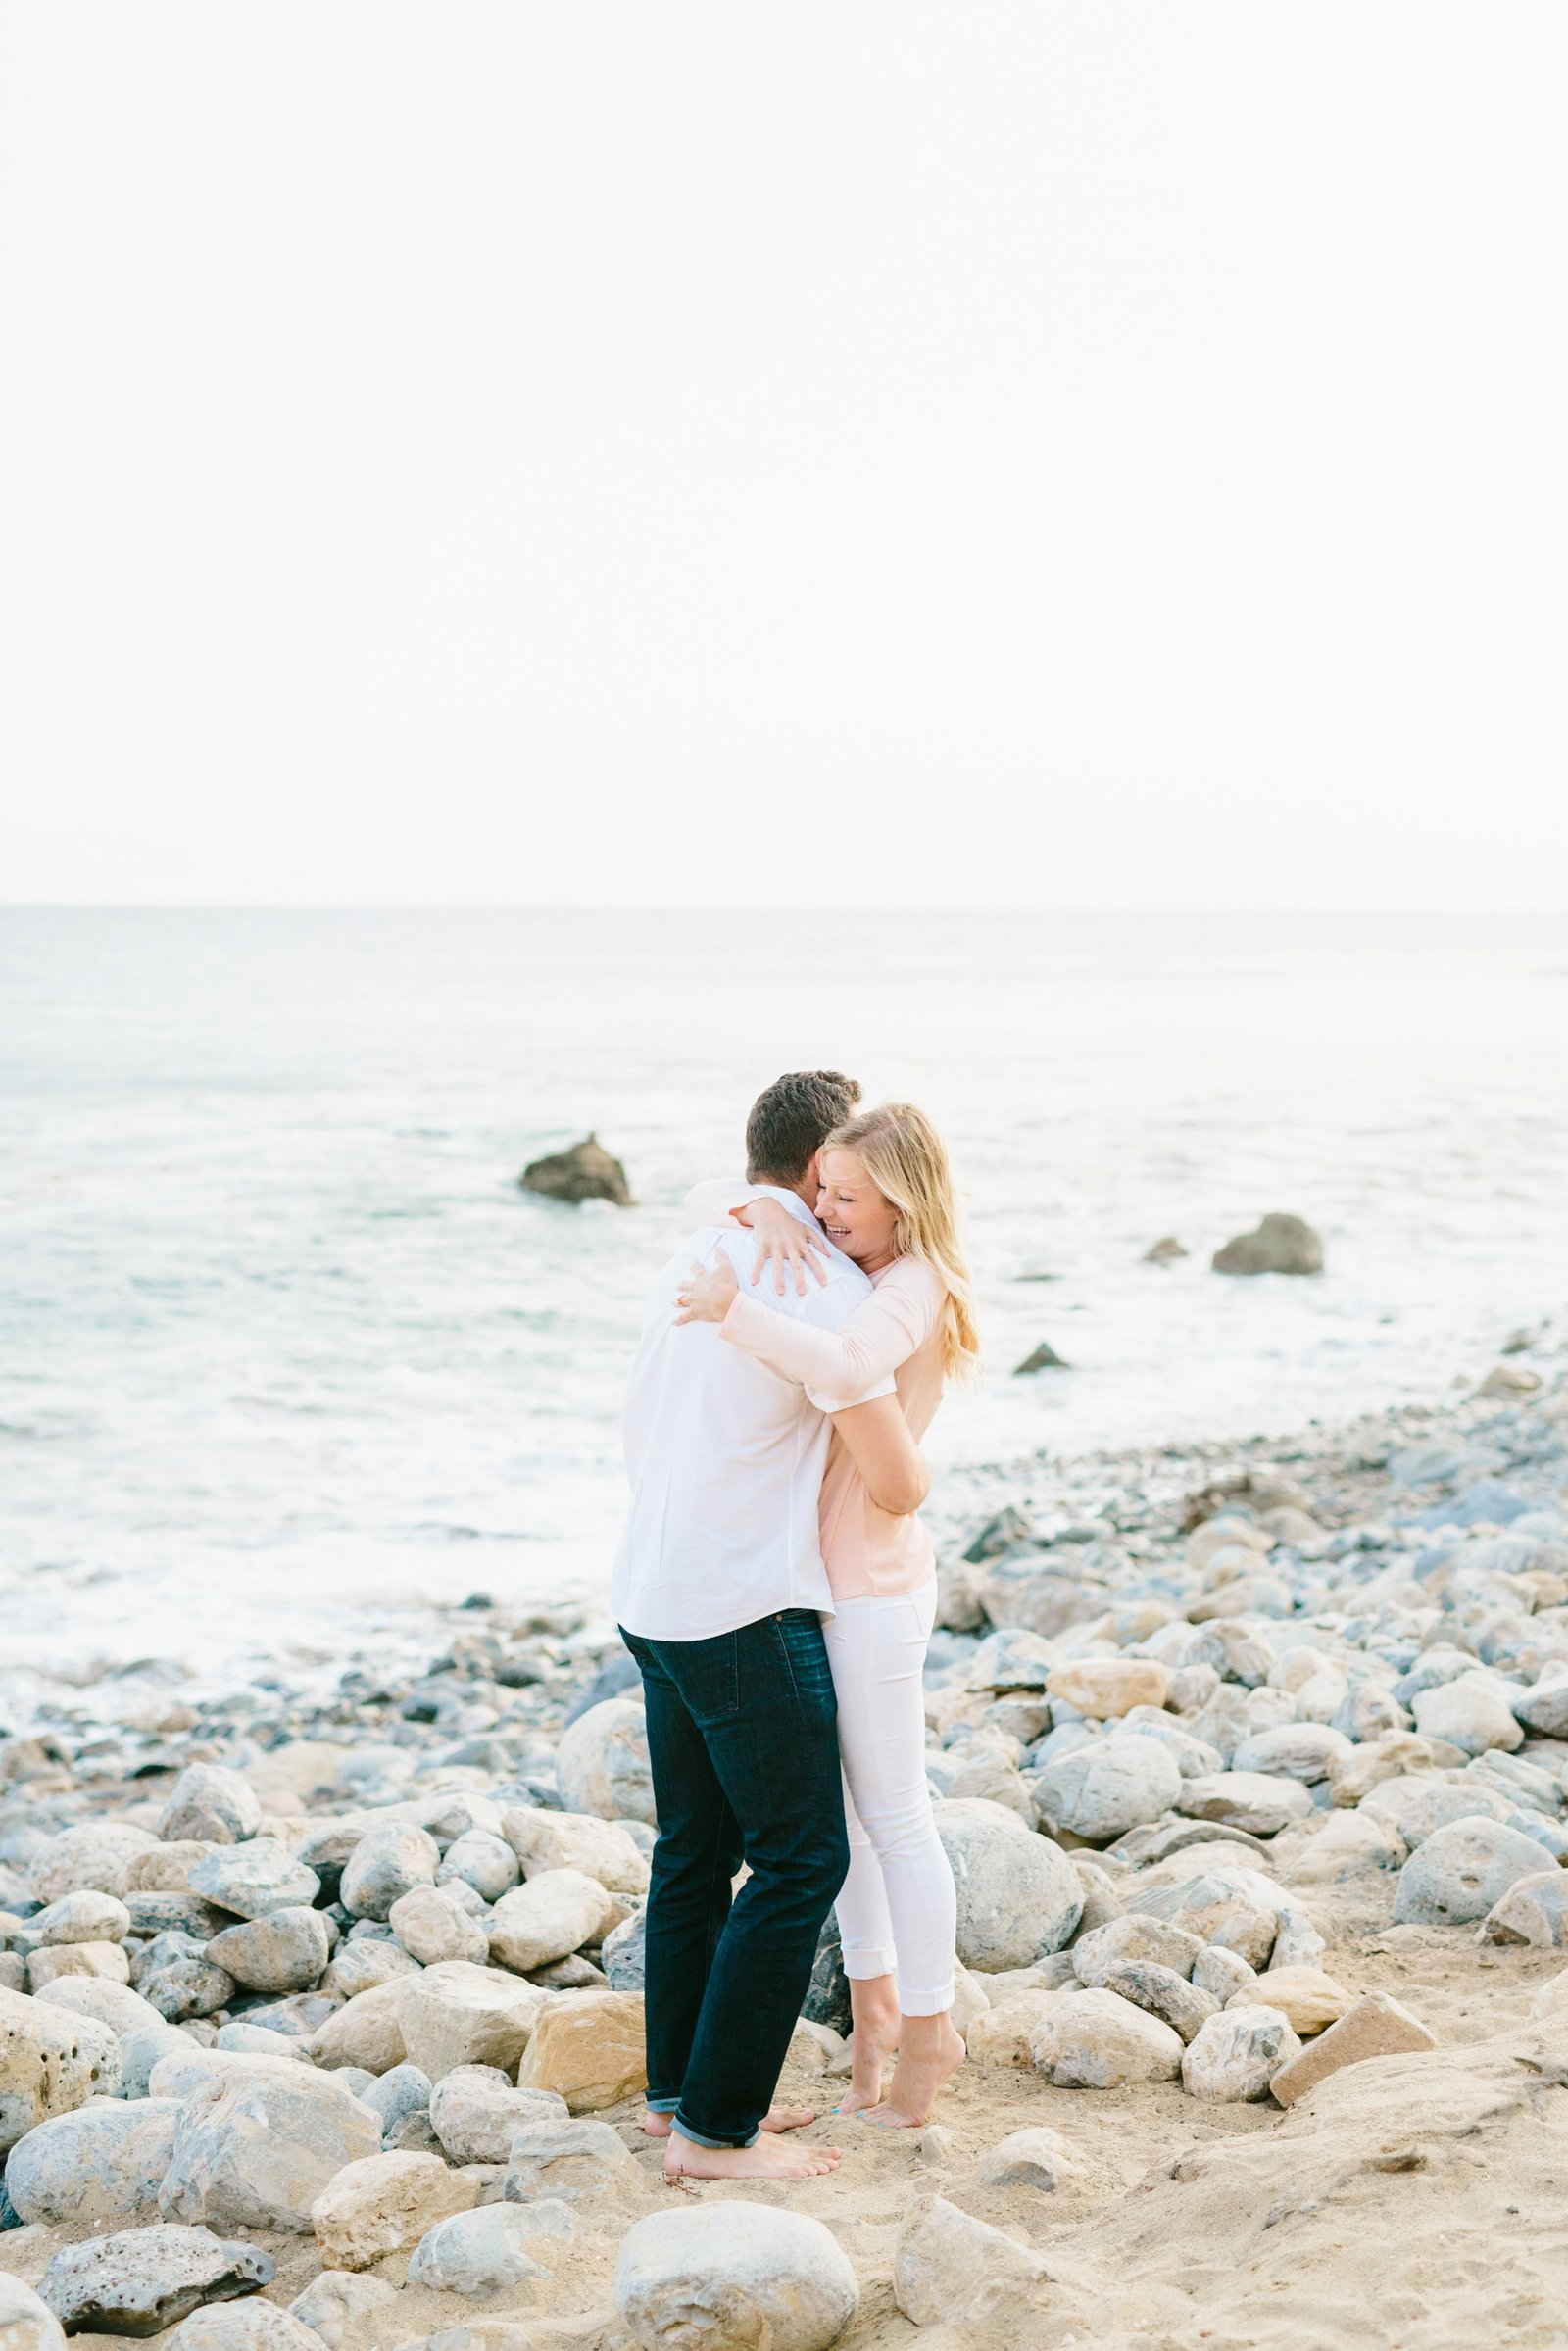 Engagement Photos-Jodee Debes Photography-010